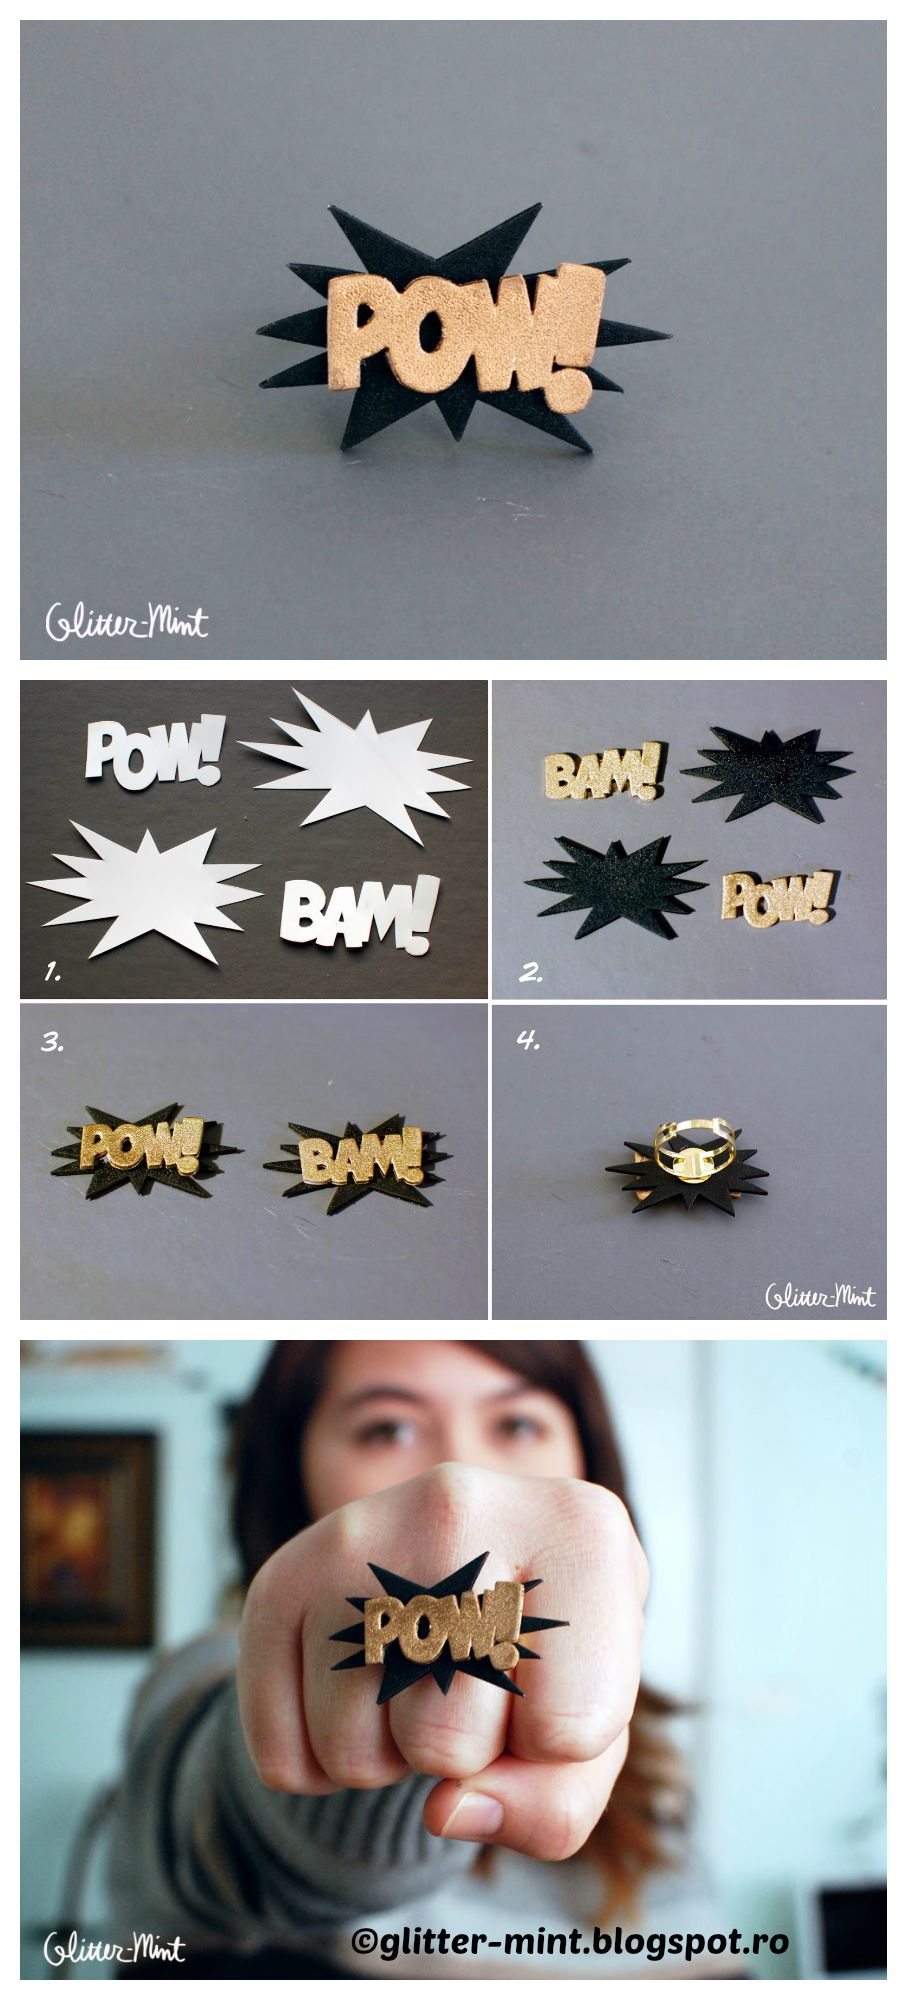 How to make a Pow Bam Plastic Ring